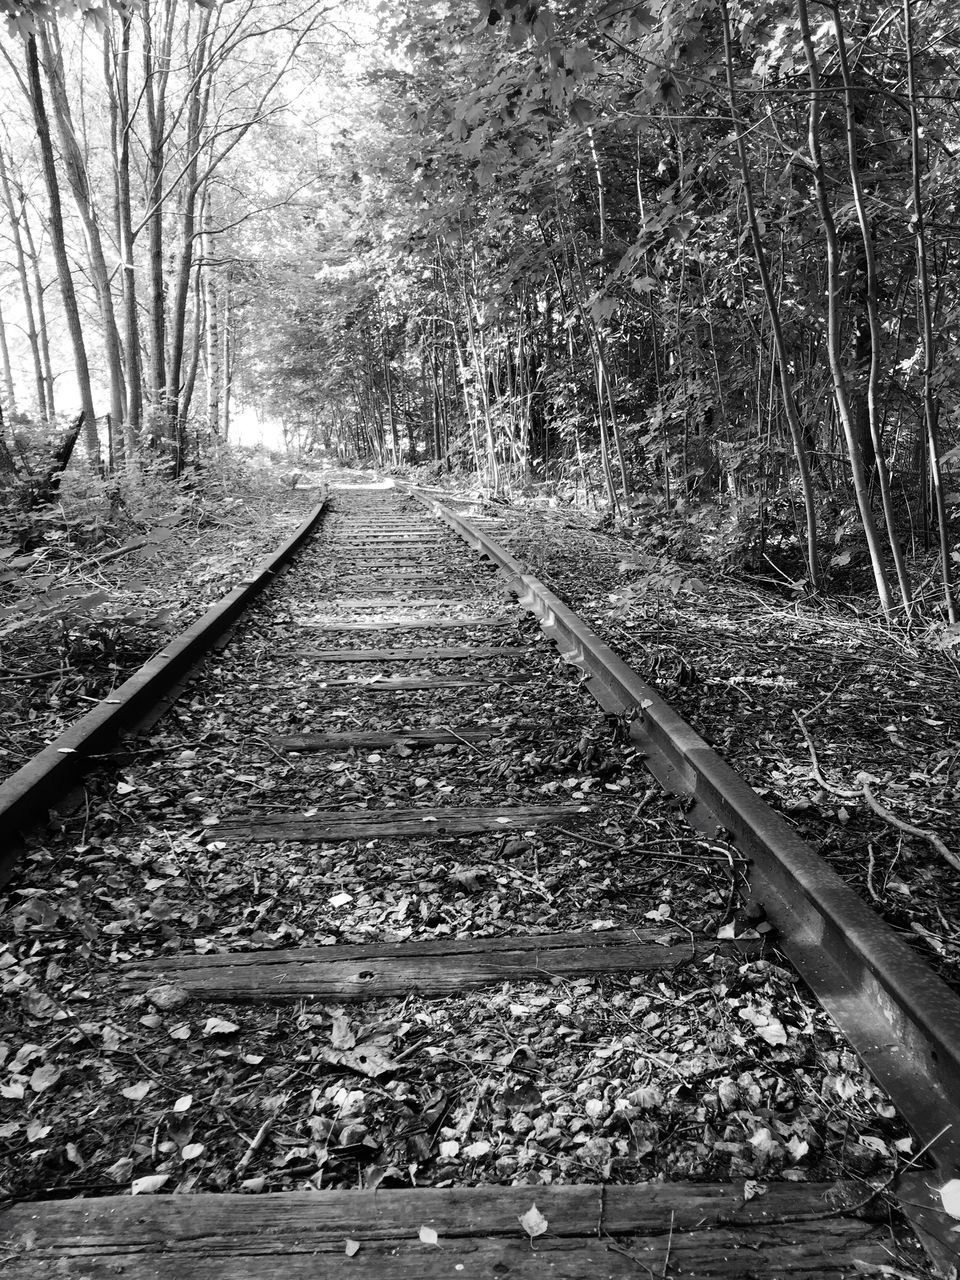 tree, railroad track, rail transportation, nature, transportation, tranquility, no people, forest, day, tranquil scene, the way forward, beauty in nature, outdoors, scenics, railroad tie, branch